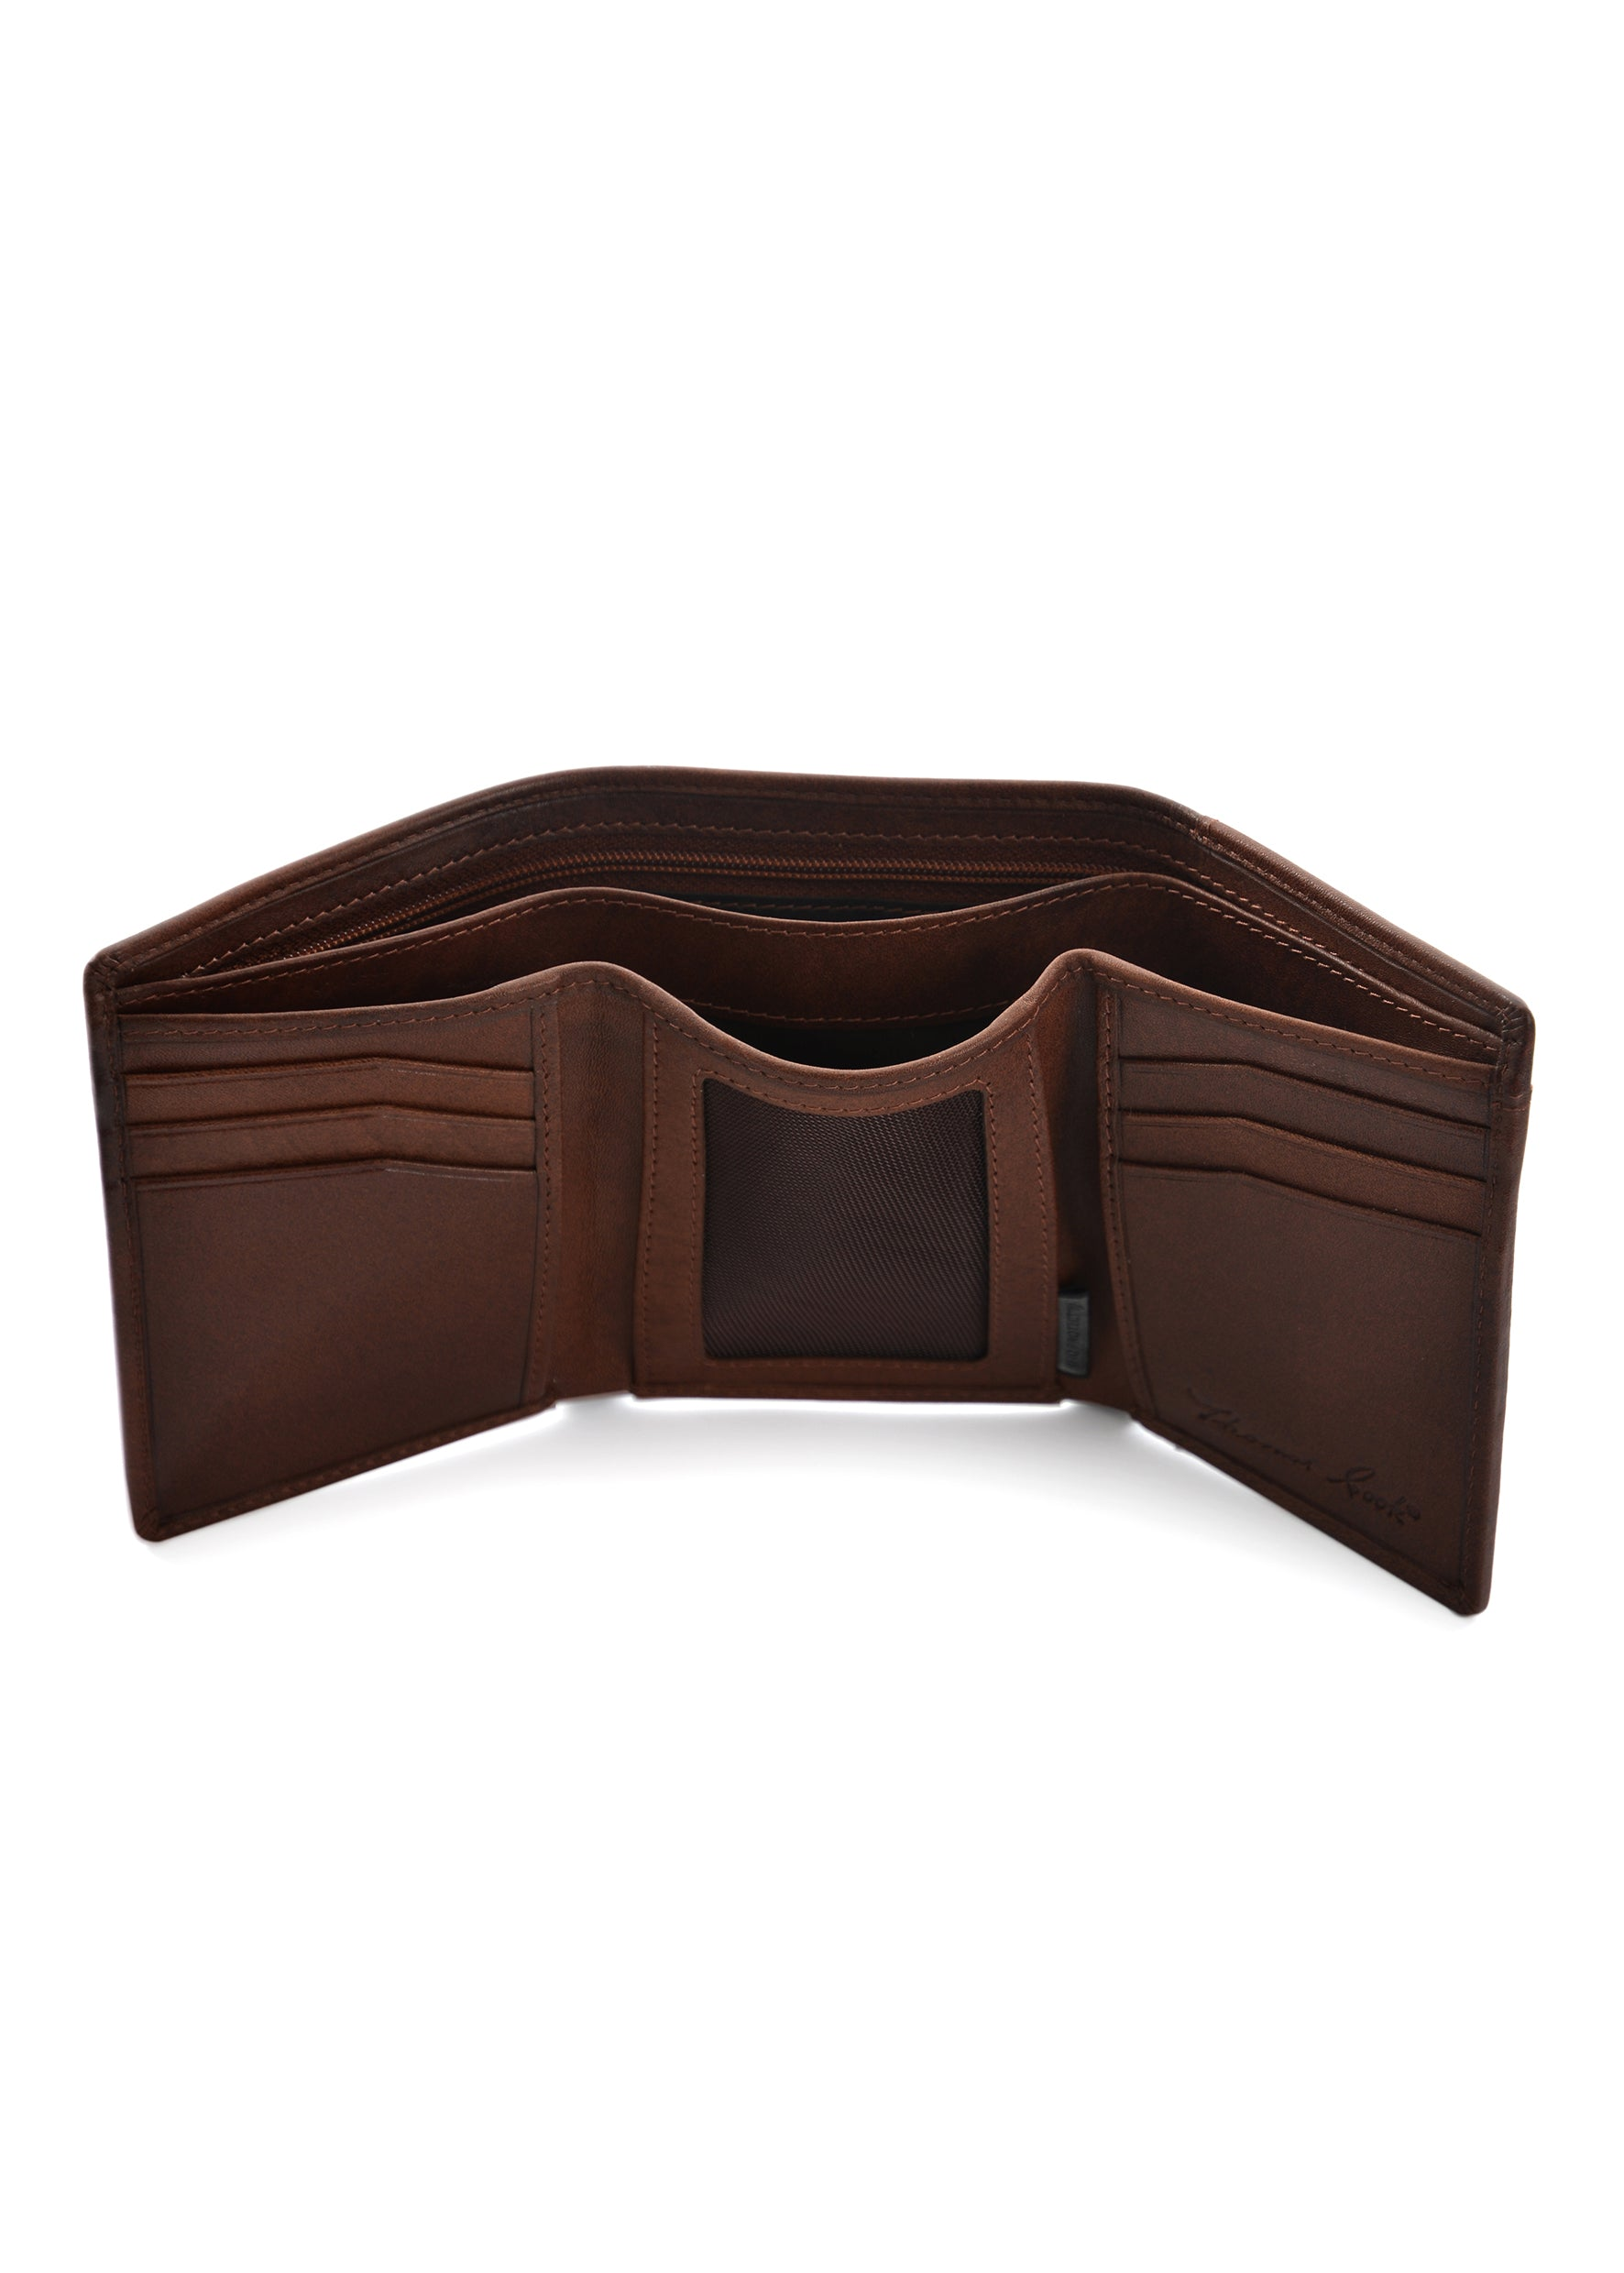 Cootamundra Tri-Fold Leather Wallet